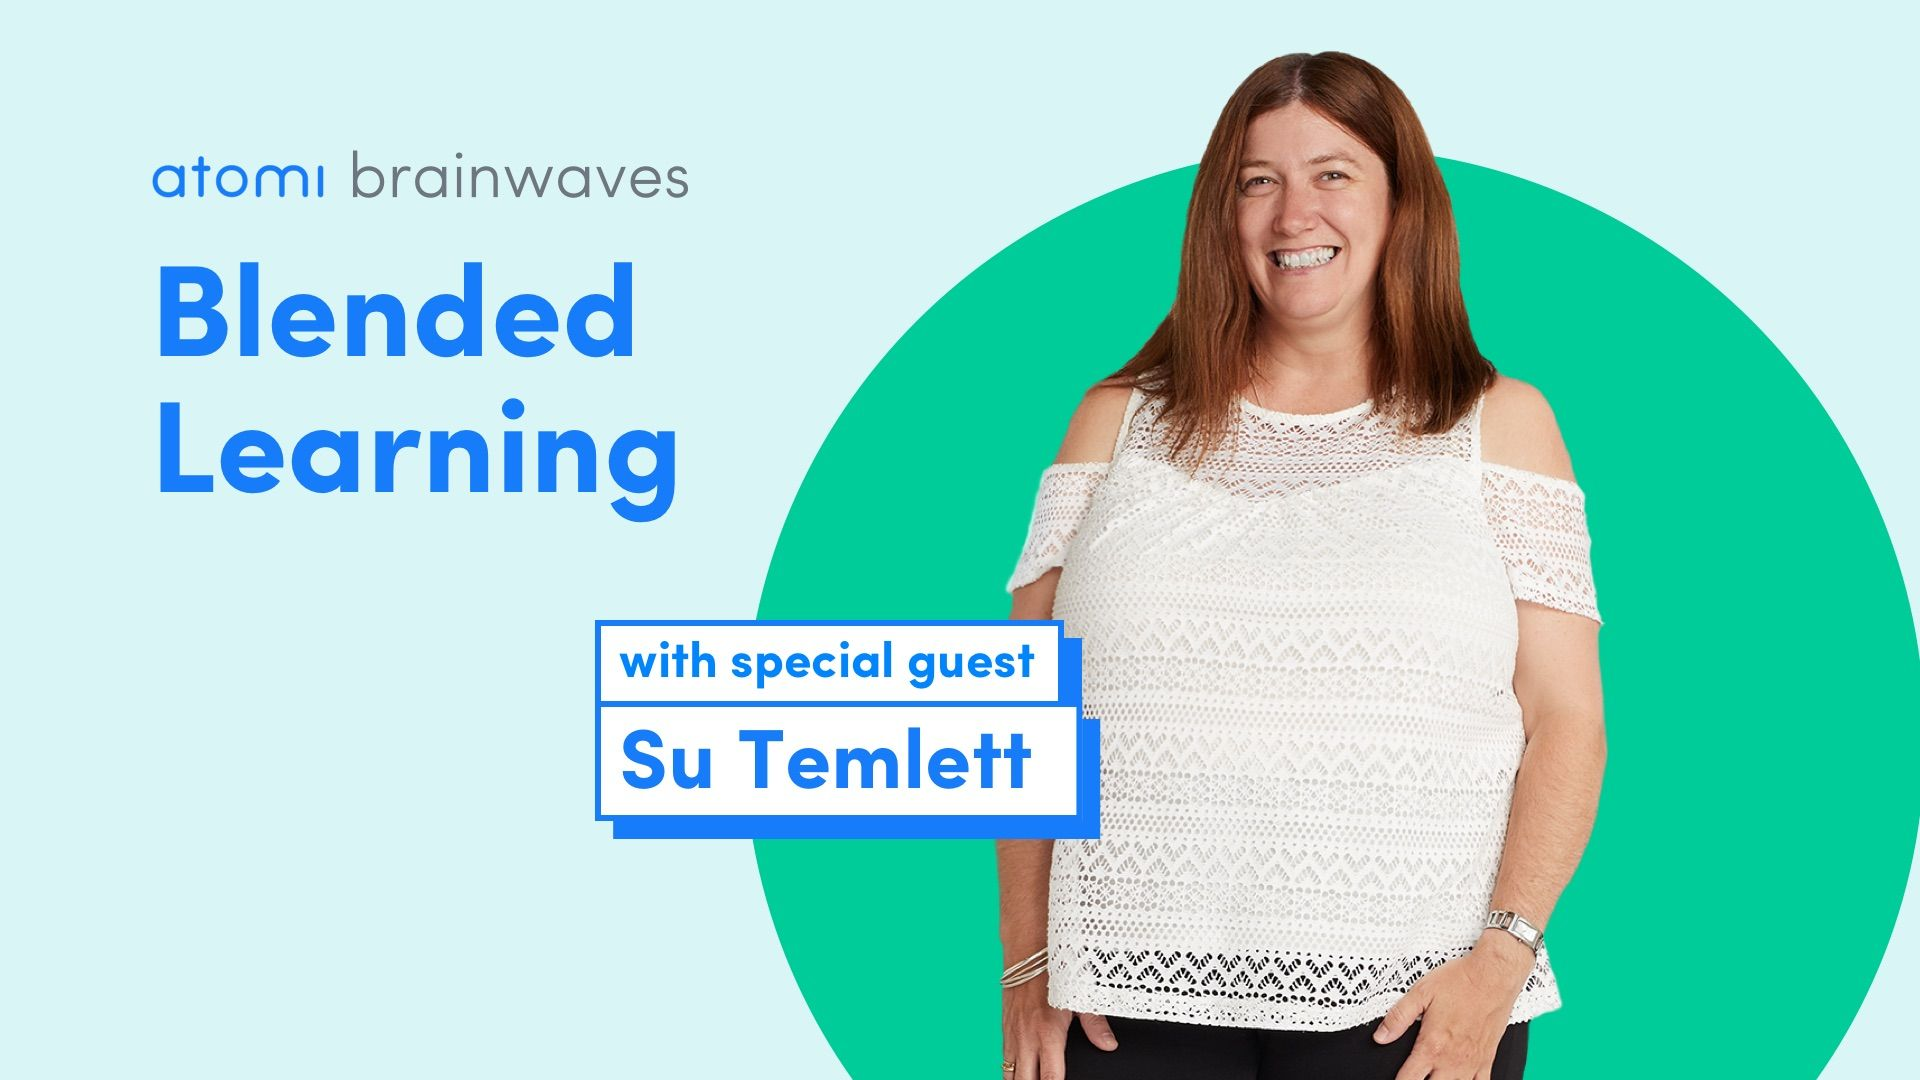 Atomi Brainwaves Podcast Blended Learning with special guest Su Temlett